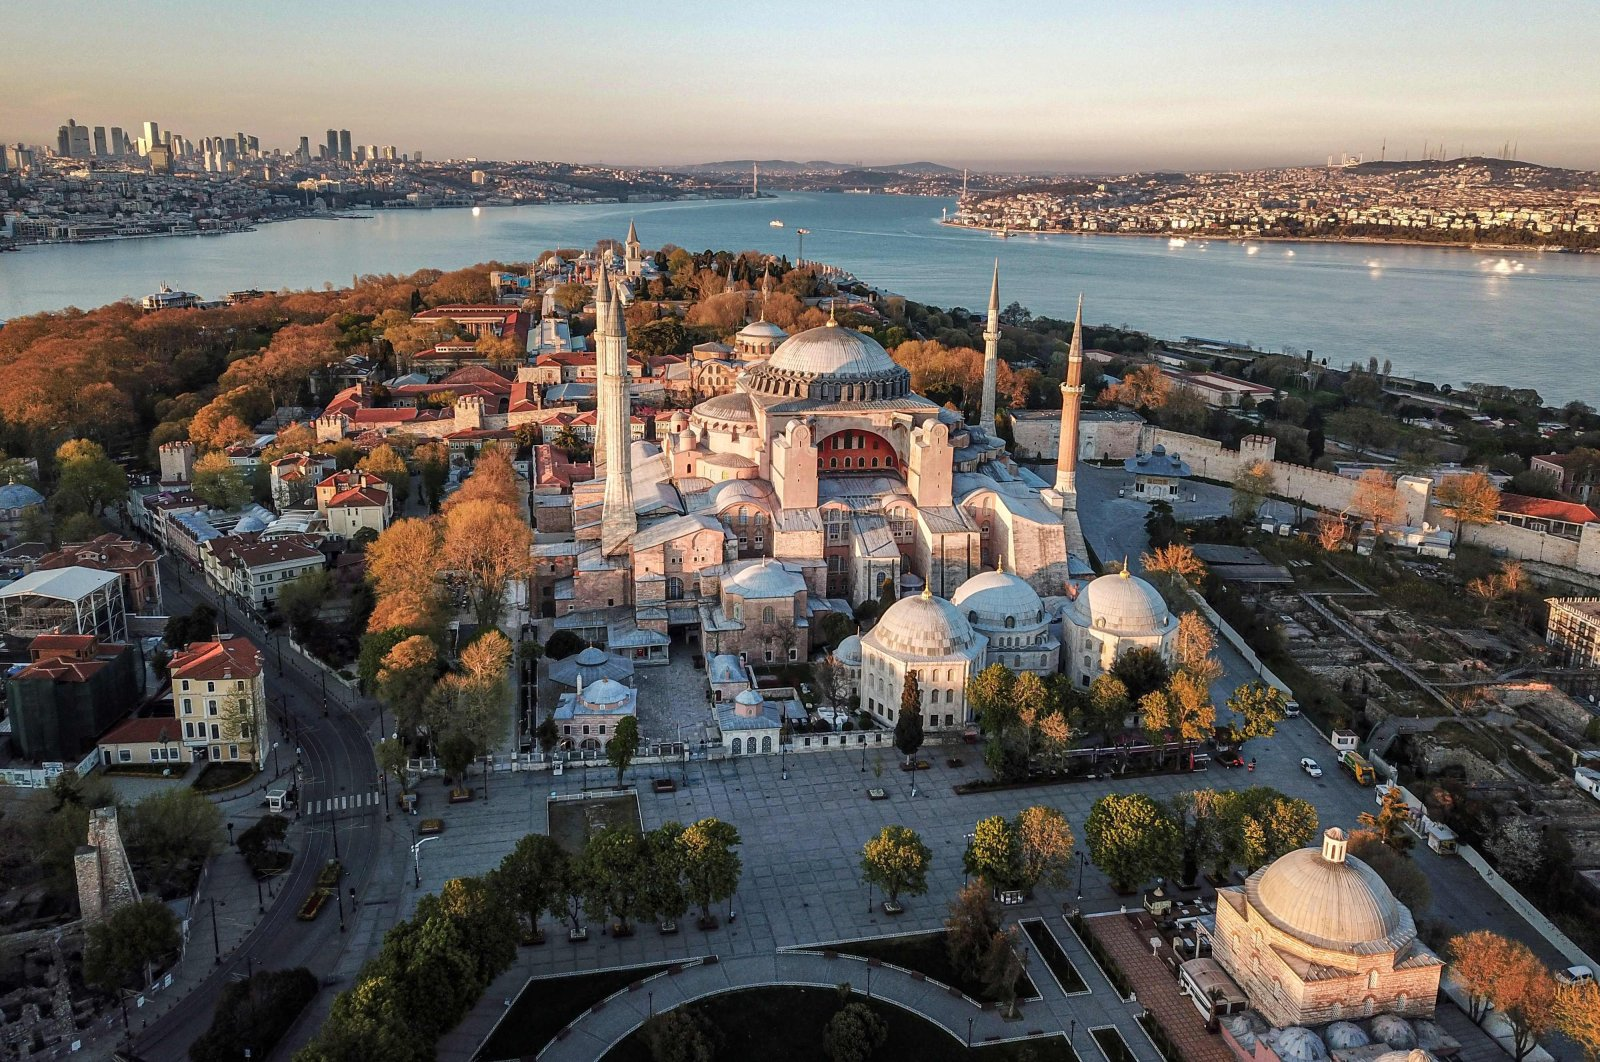 The aerial view of Hagia Sophia mosque in Istanbul, June 2, 2020. (AFP Photo)